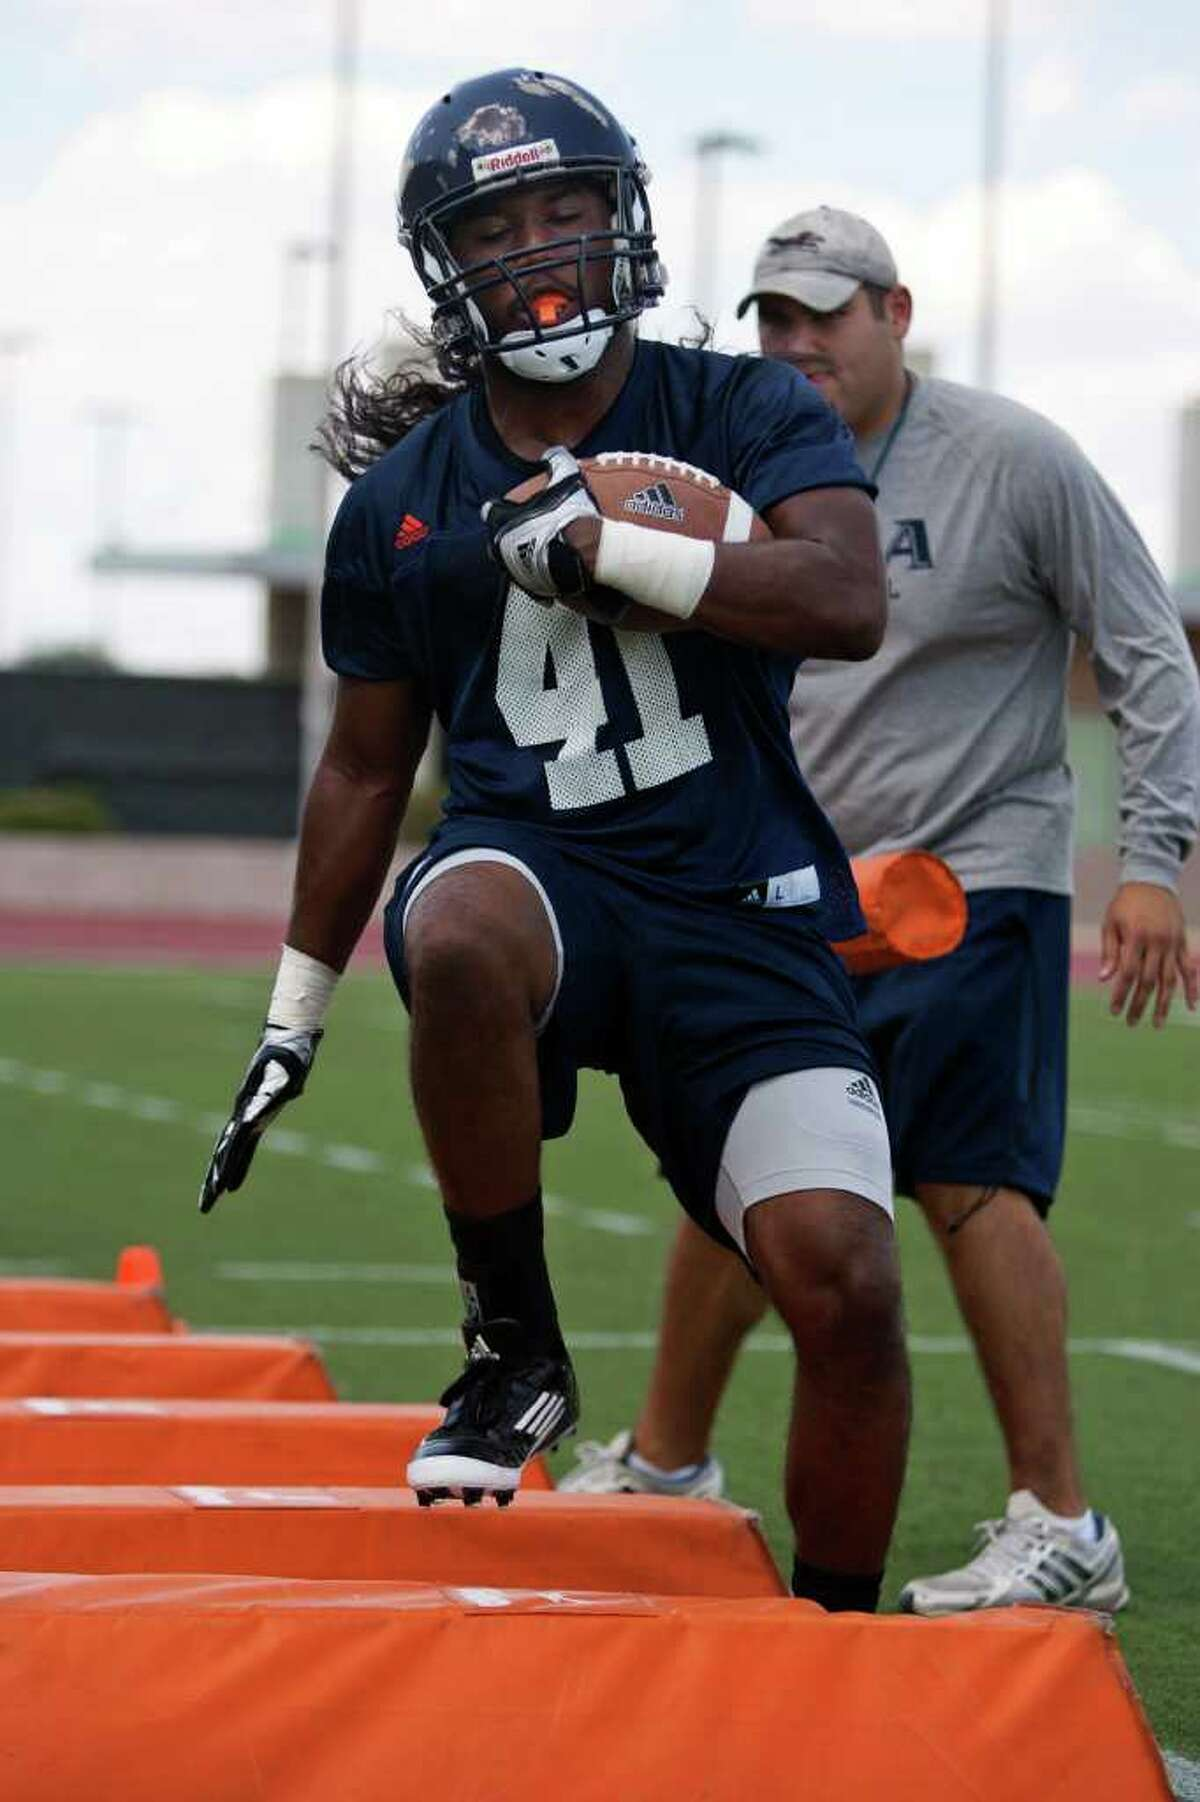 UTSA running back CheRod Simpson (41) runs a drill in front of running backs coach Polo Gutierrez during the Roadrunners' first fall practice on Sunday, August 7, 2011 at Farris Stadium. Simpson is a sophomore walk-on from Oakland, Calif., who spent a semester at Texas A&M-Commerce.